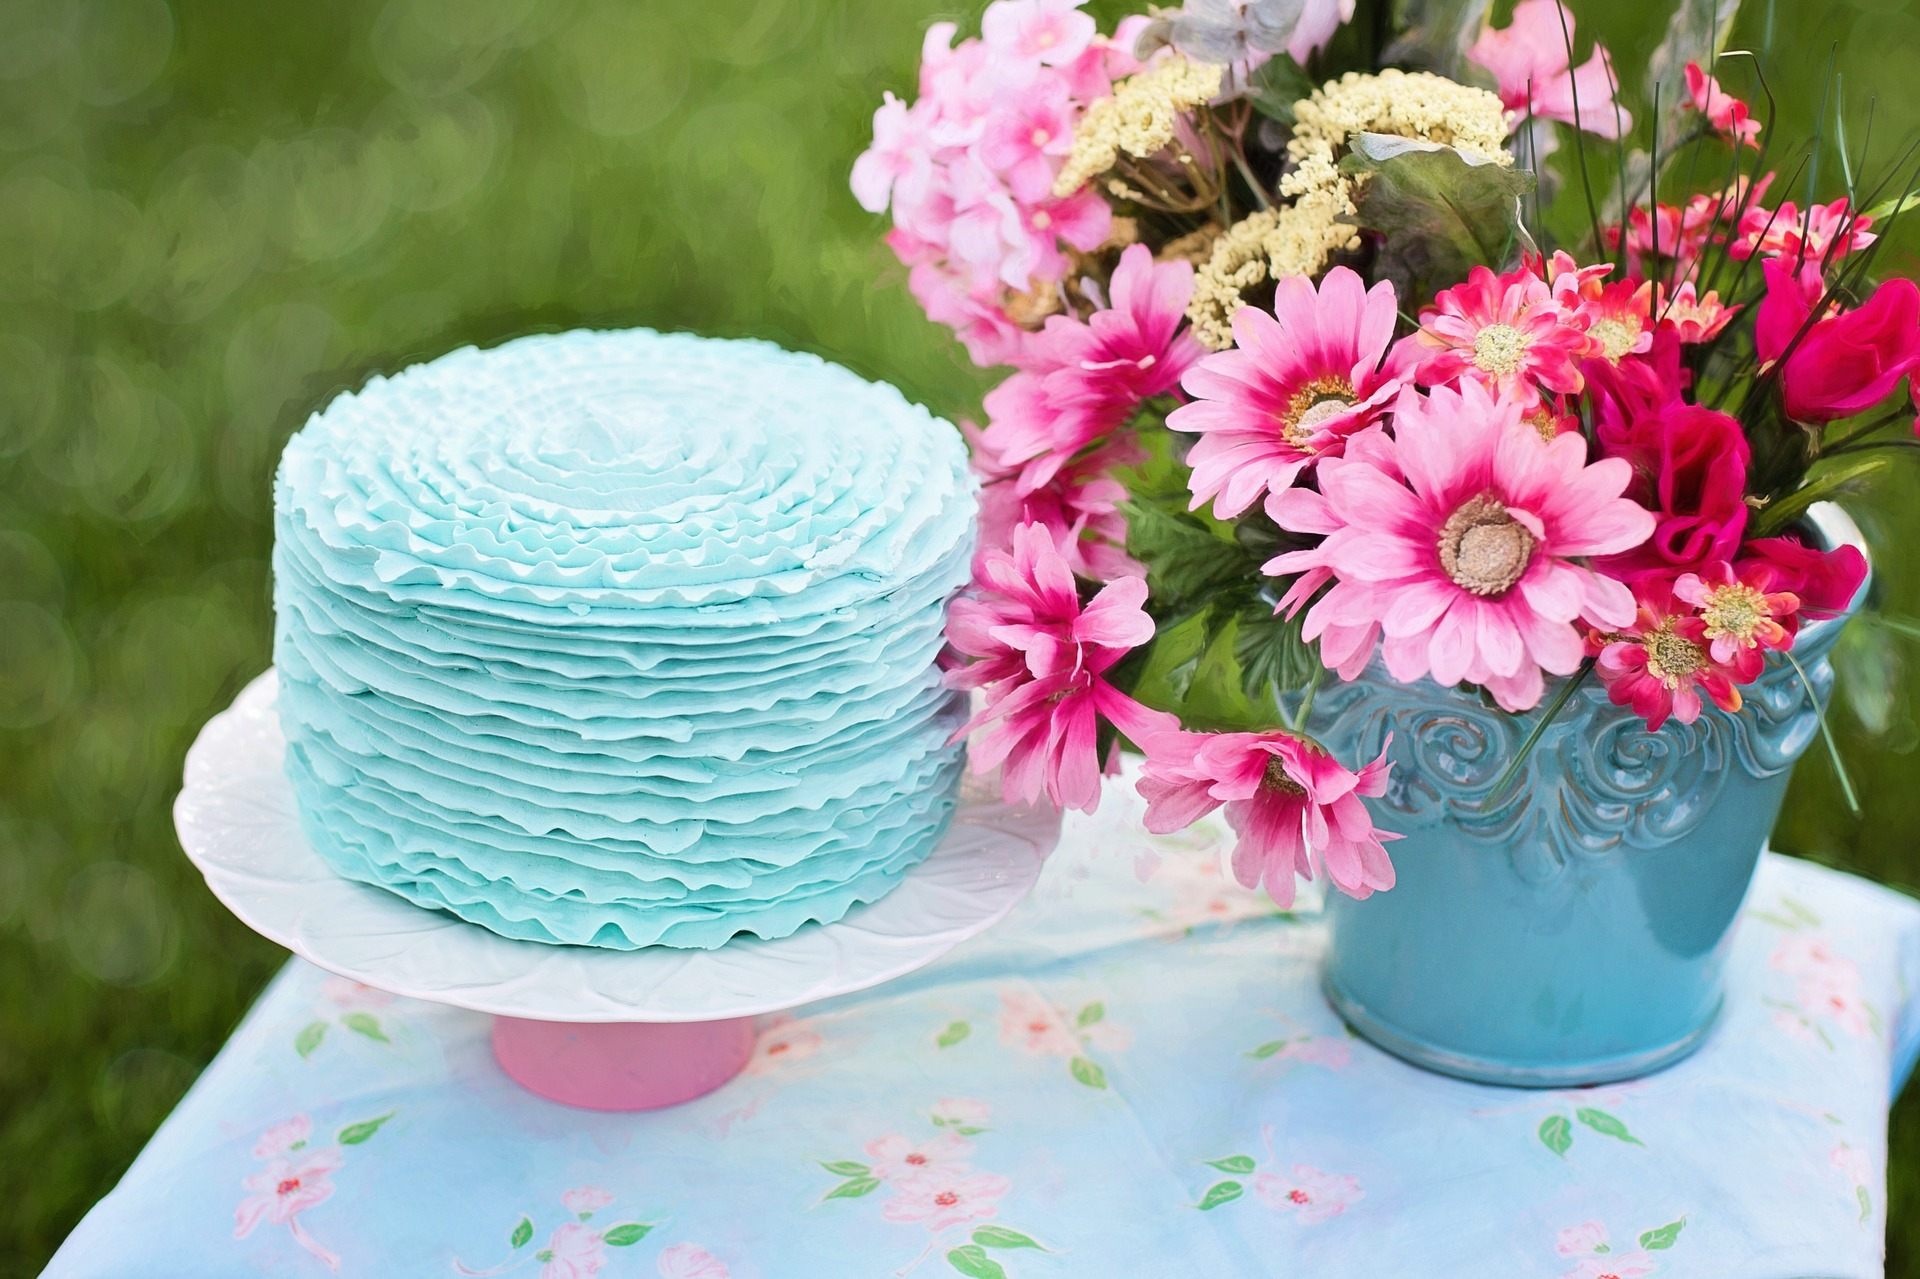 Free Photo Cake For Birthday Food Pot Flower Free Download